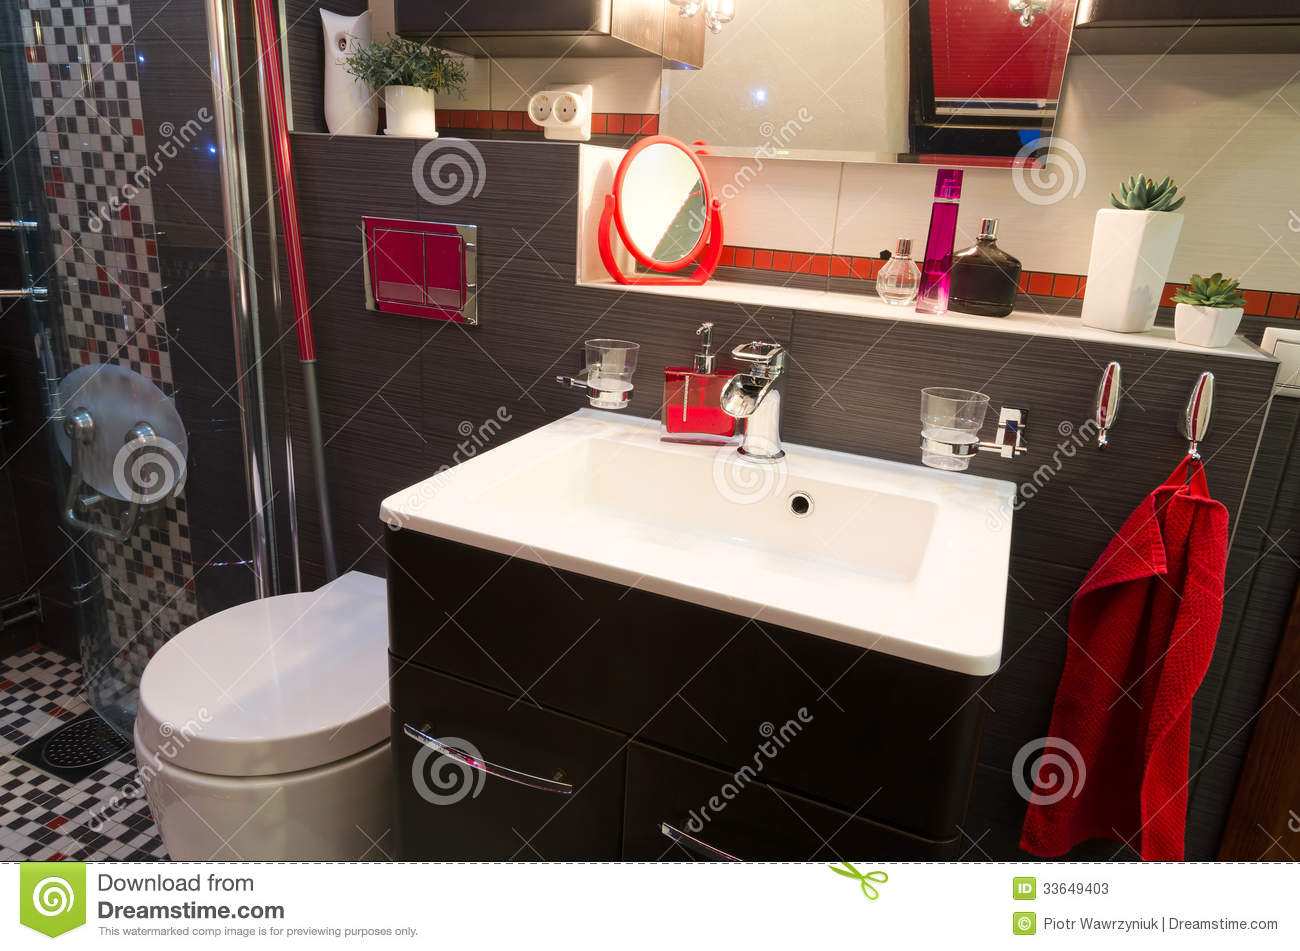 Modern bathroom interior with red accents stock photos for Red accent bathroom